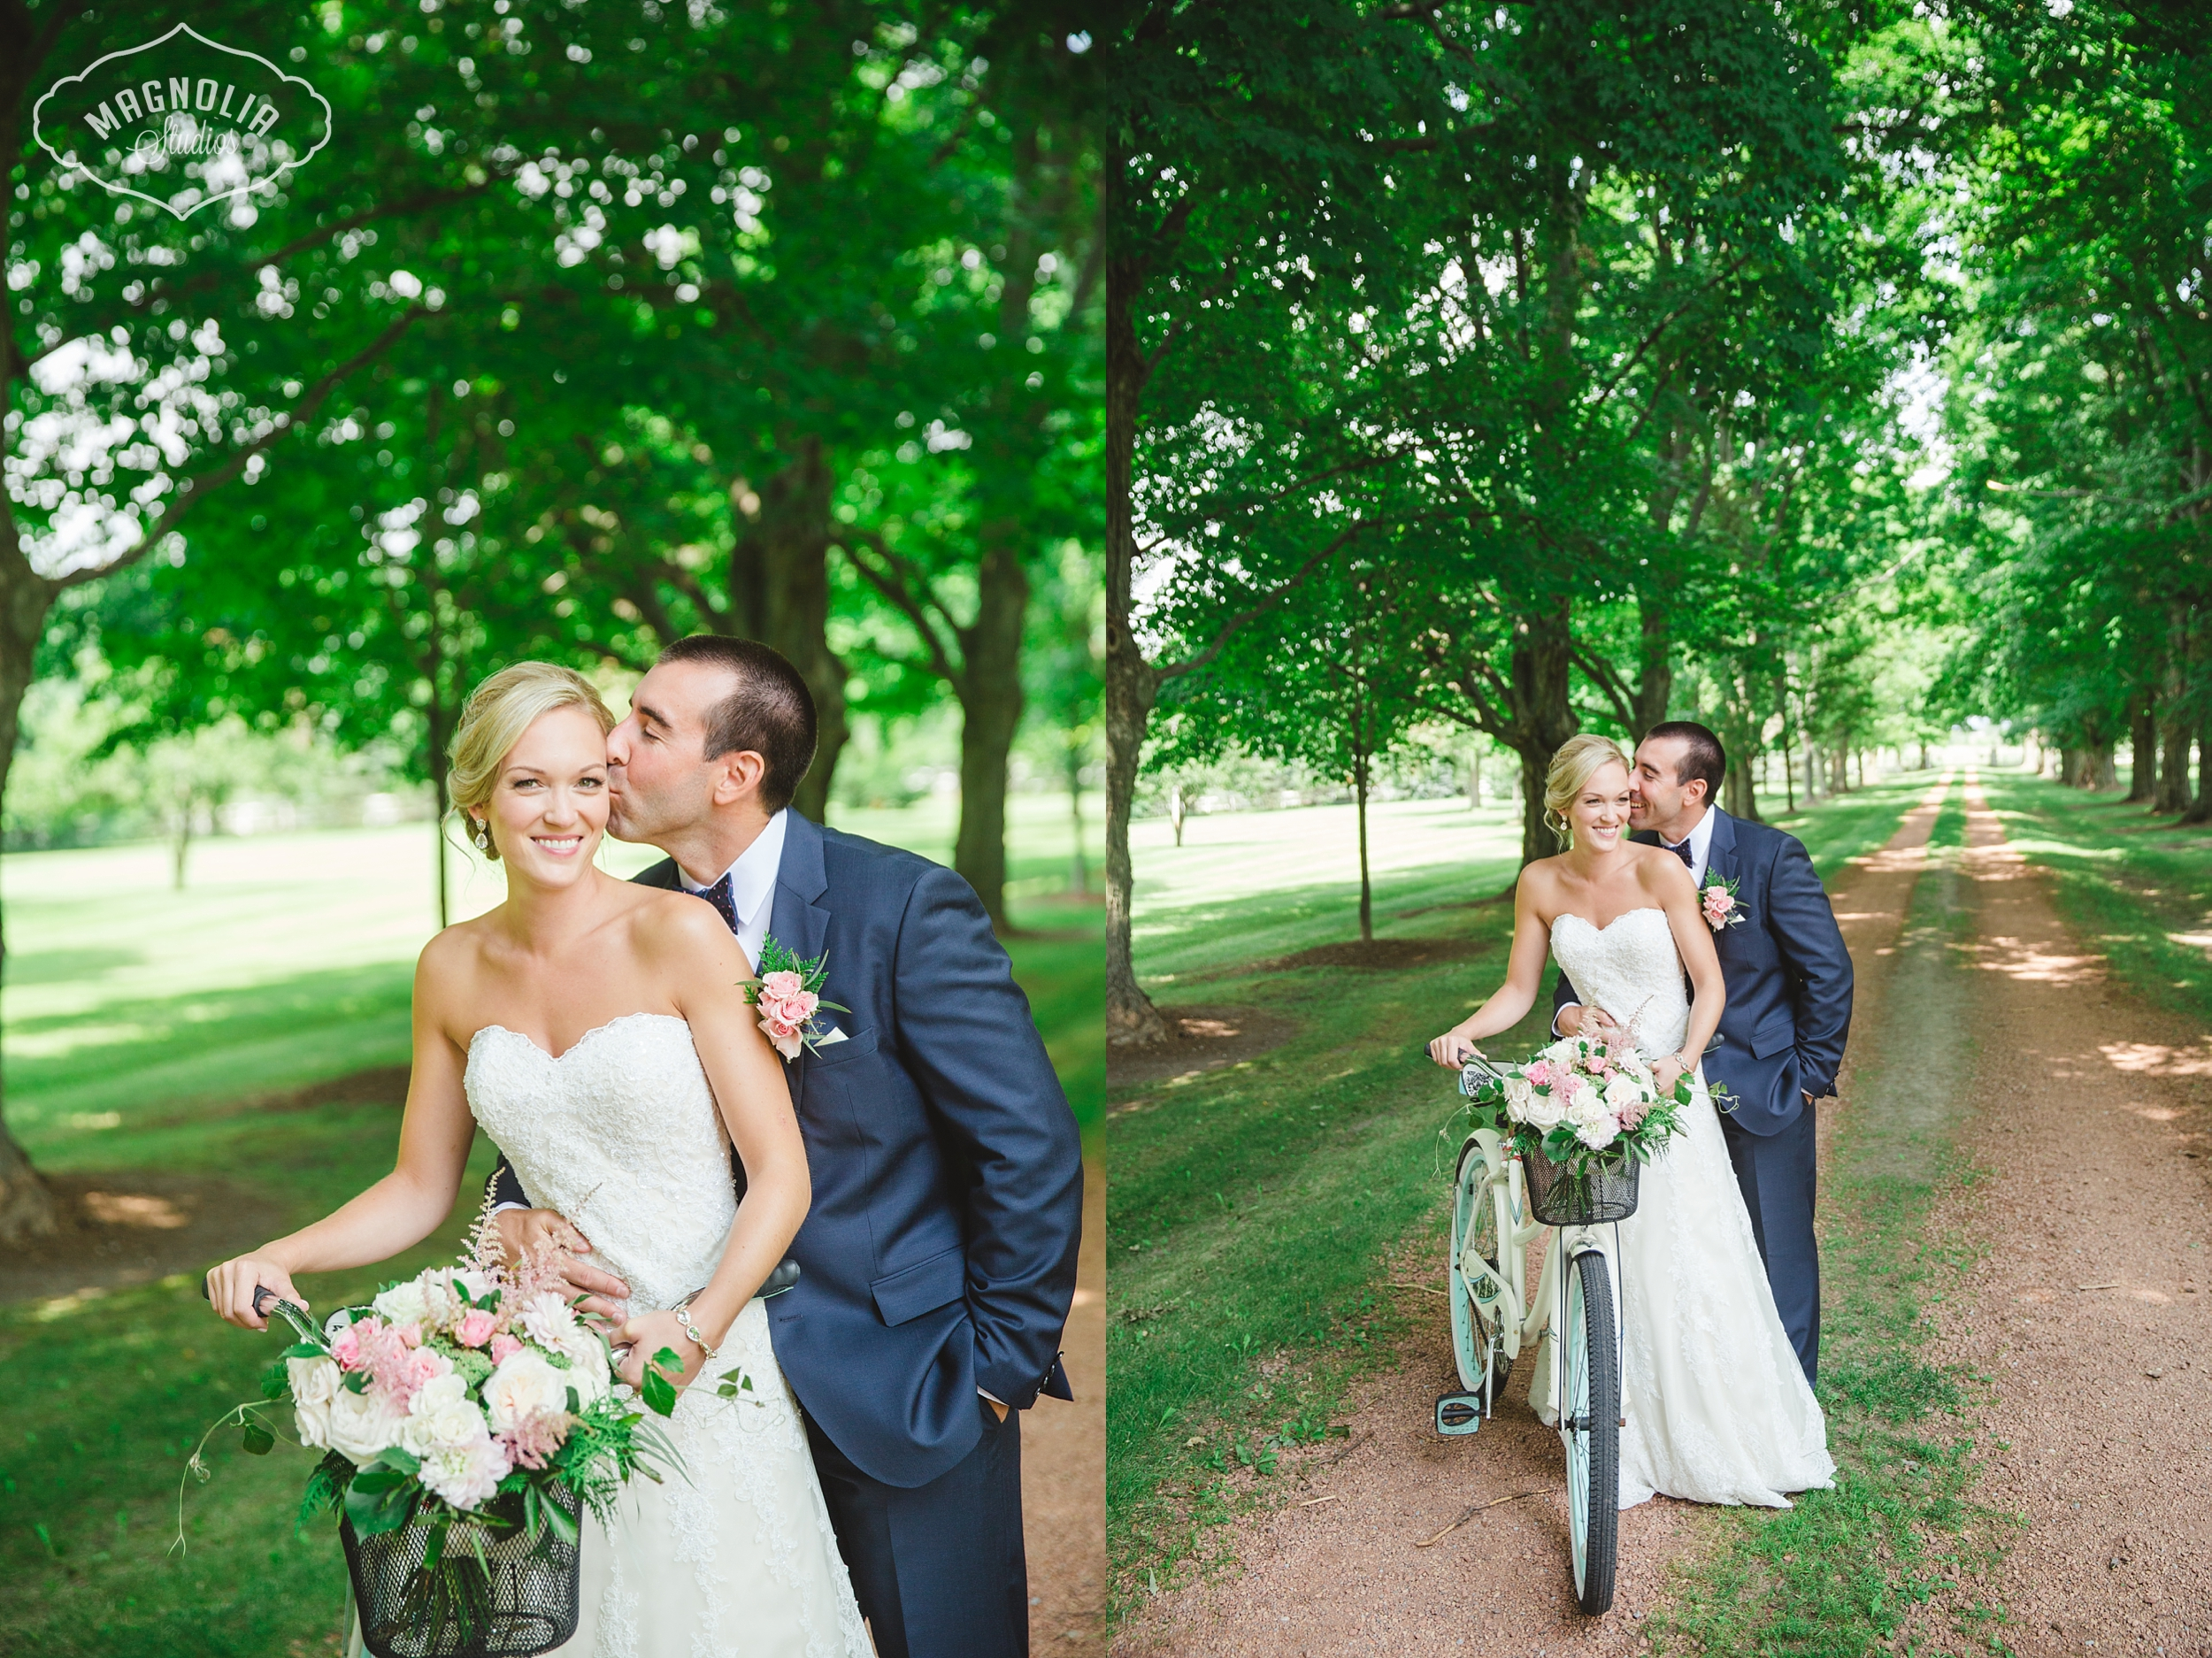 Belcroft_Estates_Wedding_Magnolia_Studios-14